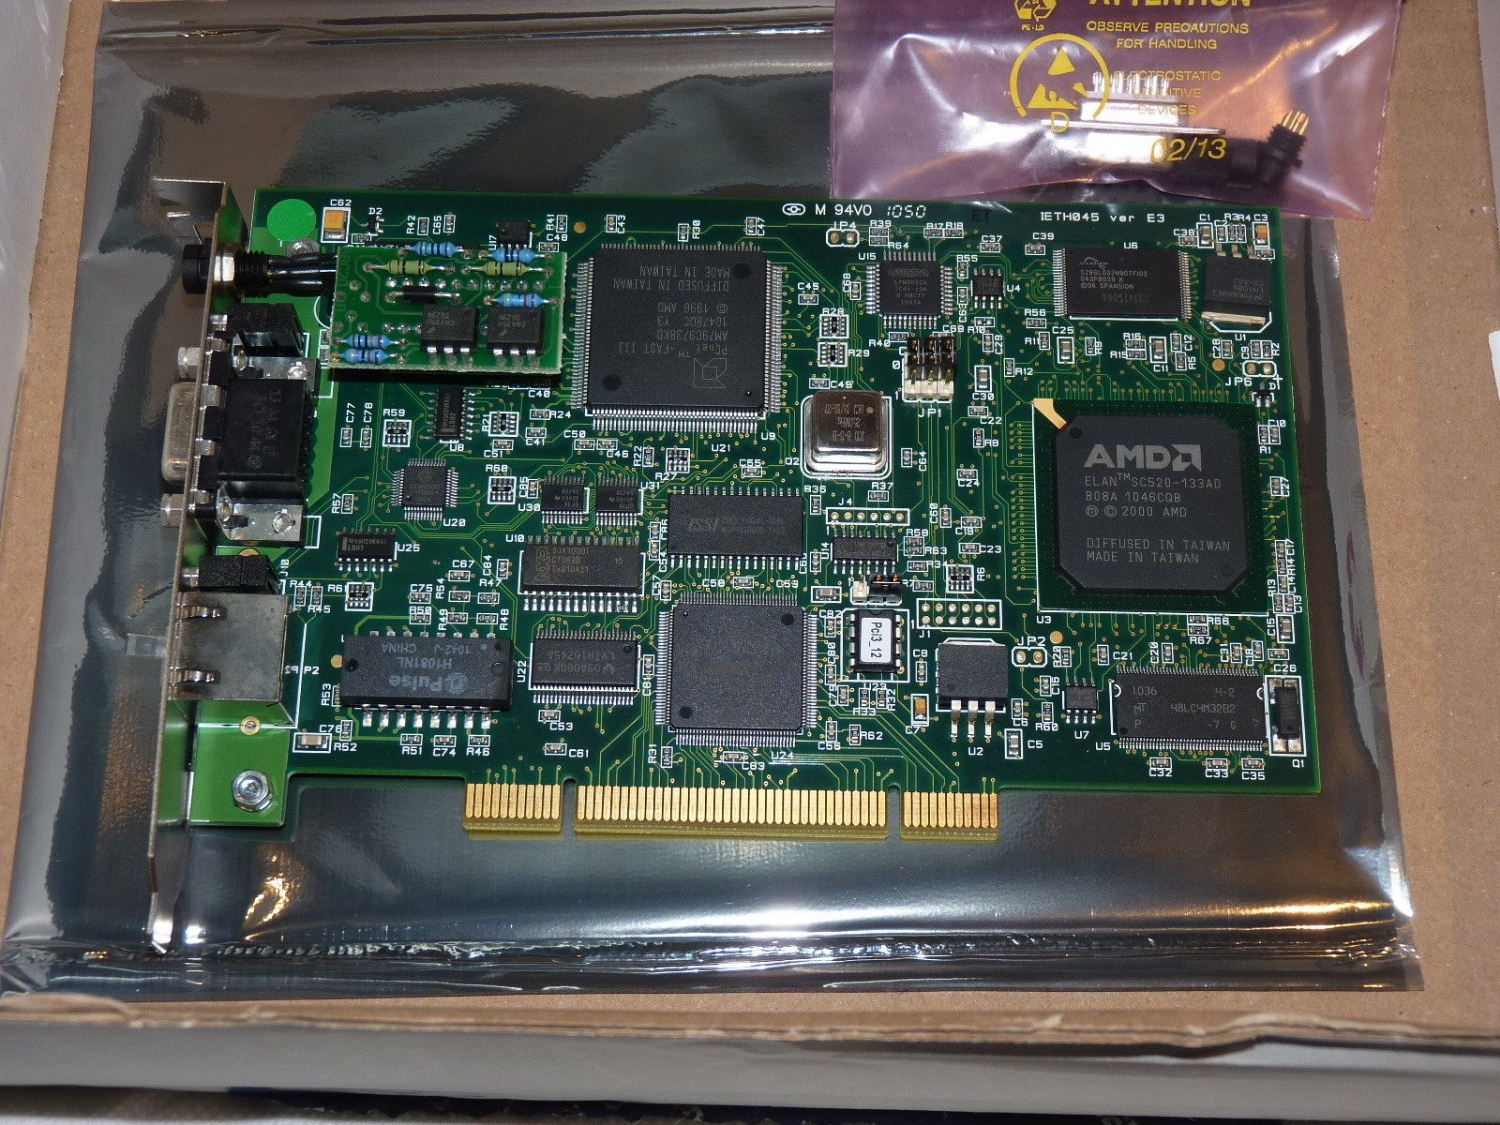 Card mạng, Molex / Woodhead / Applicom PCU1000 PCI Network Interface Card